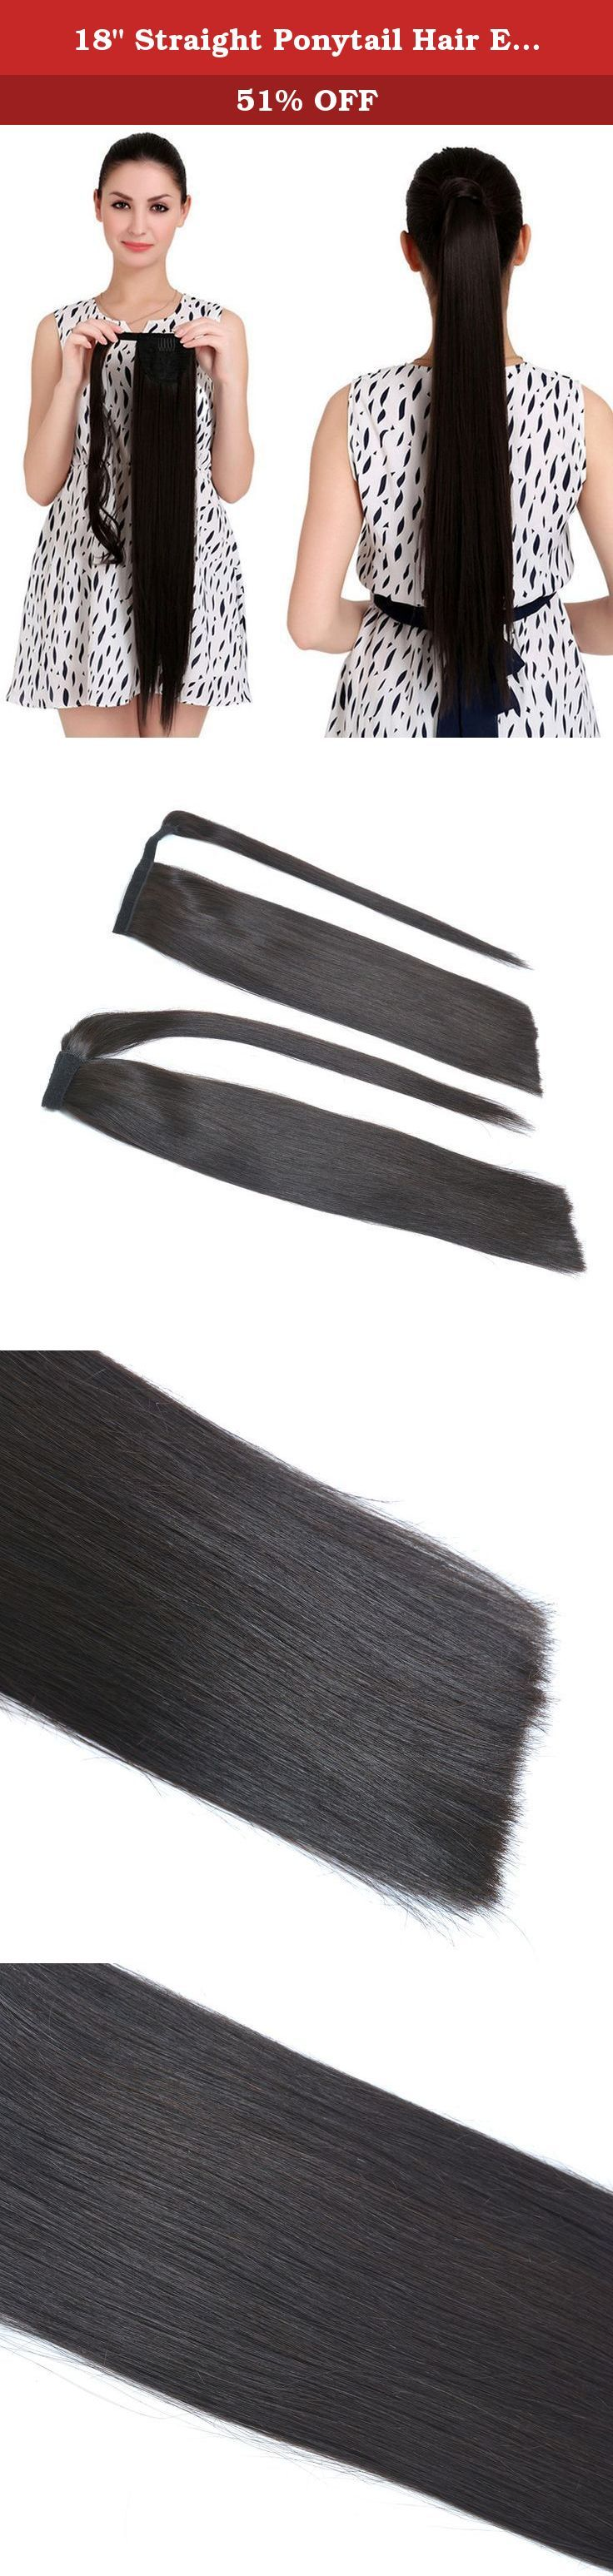 "18"" Straight Ponytail Hair Extension Human Hair Wrap Ponytail Hairpiece 100g Natural Black 1b#. BEAUTY PLUS hair Ponytail Hair Extensions BEAUTY PLUS...in two minutes or less! One of the most amazing, fun and innovative products you will love to wear! BEAUTY PLUS is amazing in quality and the simplest and quickest extensions to apply! BEAUTY PLUS human hair ponytail extensions can be curled or flat ironed just like your own hair. Now you can have longer, thicker, more voluminous BEAUTY…"